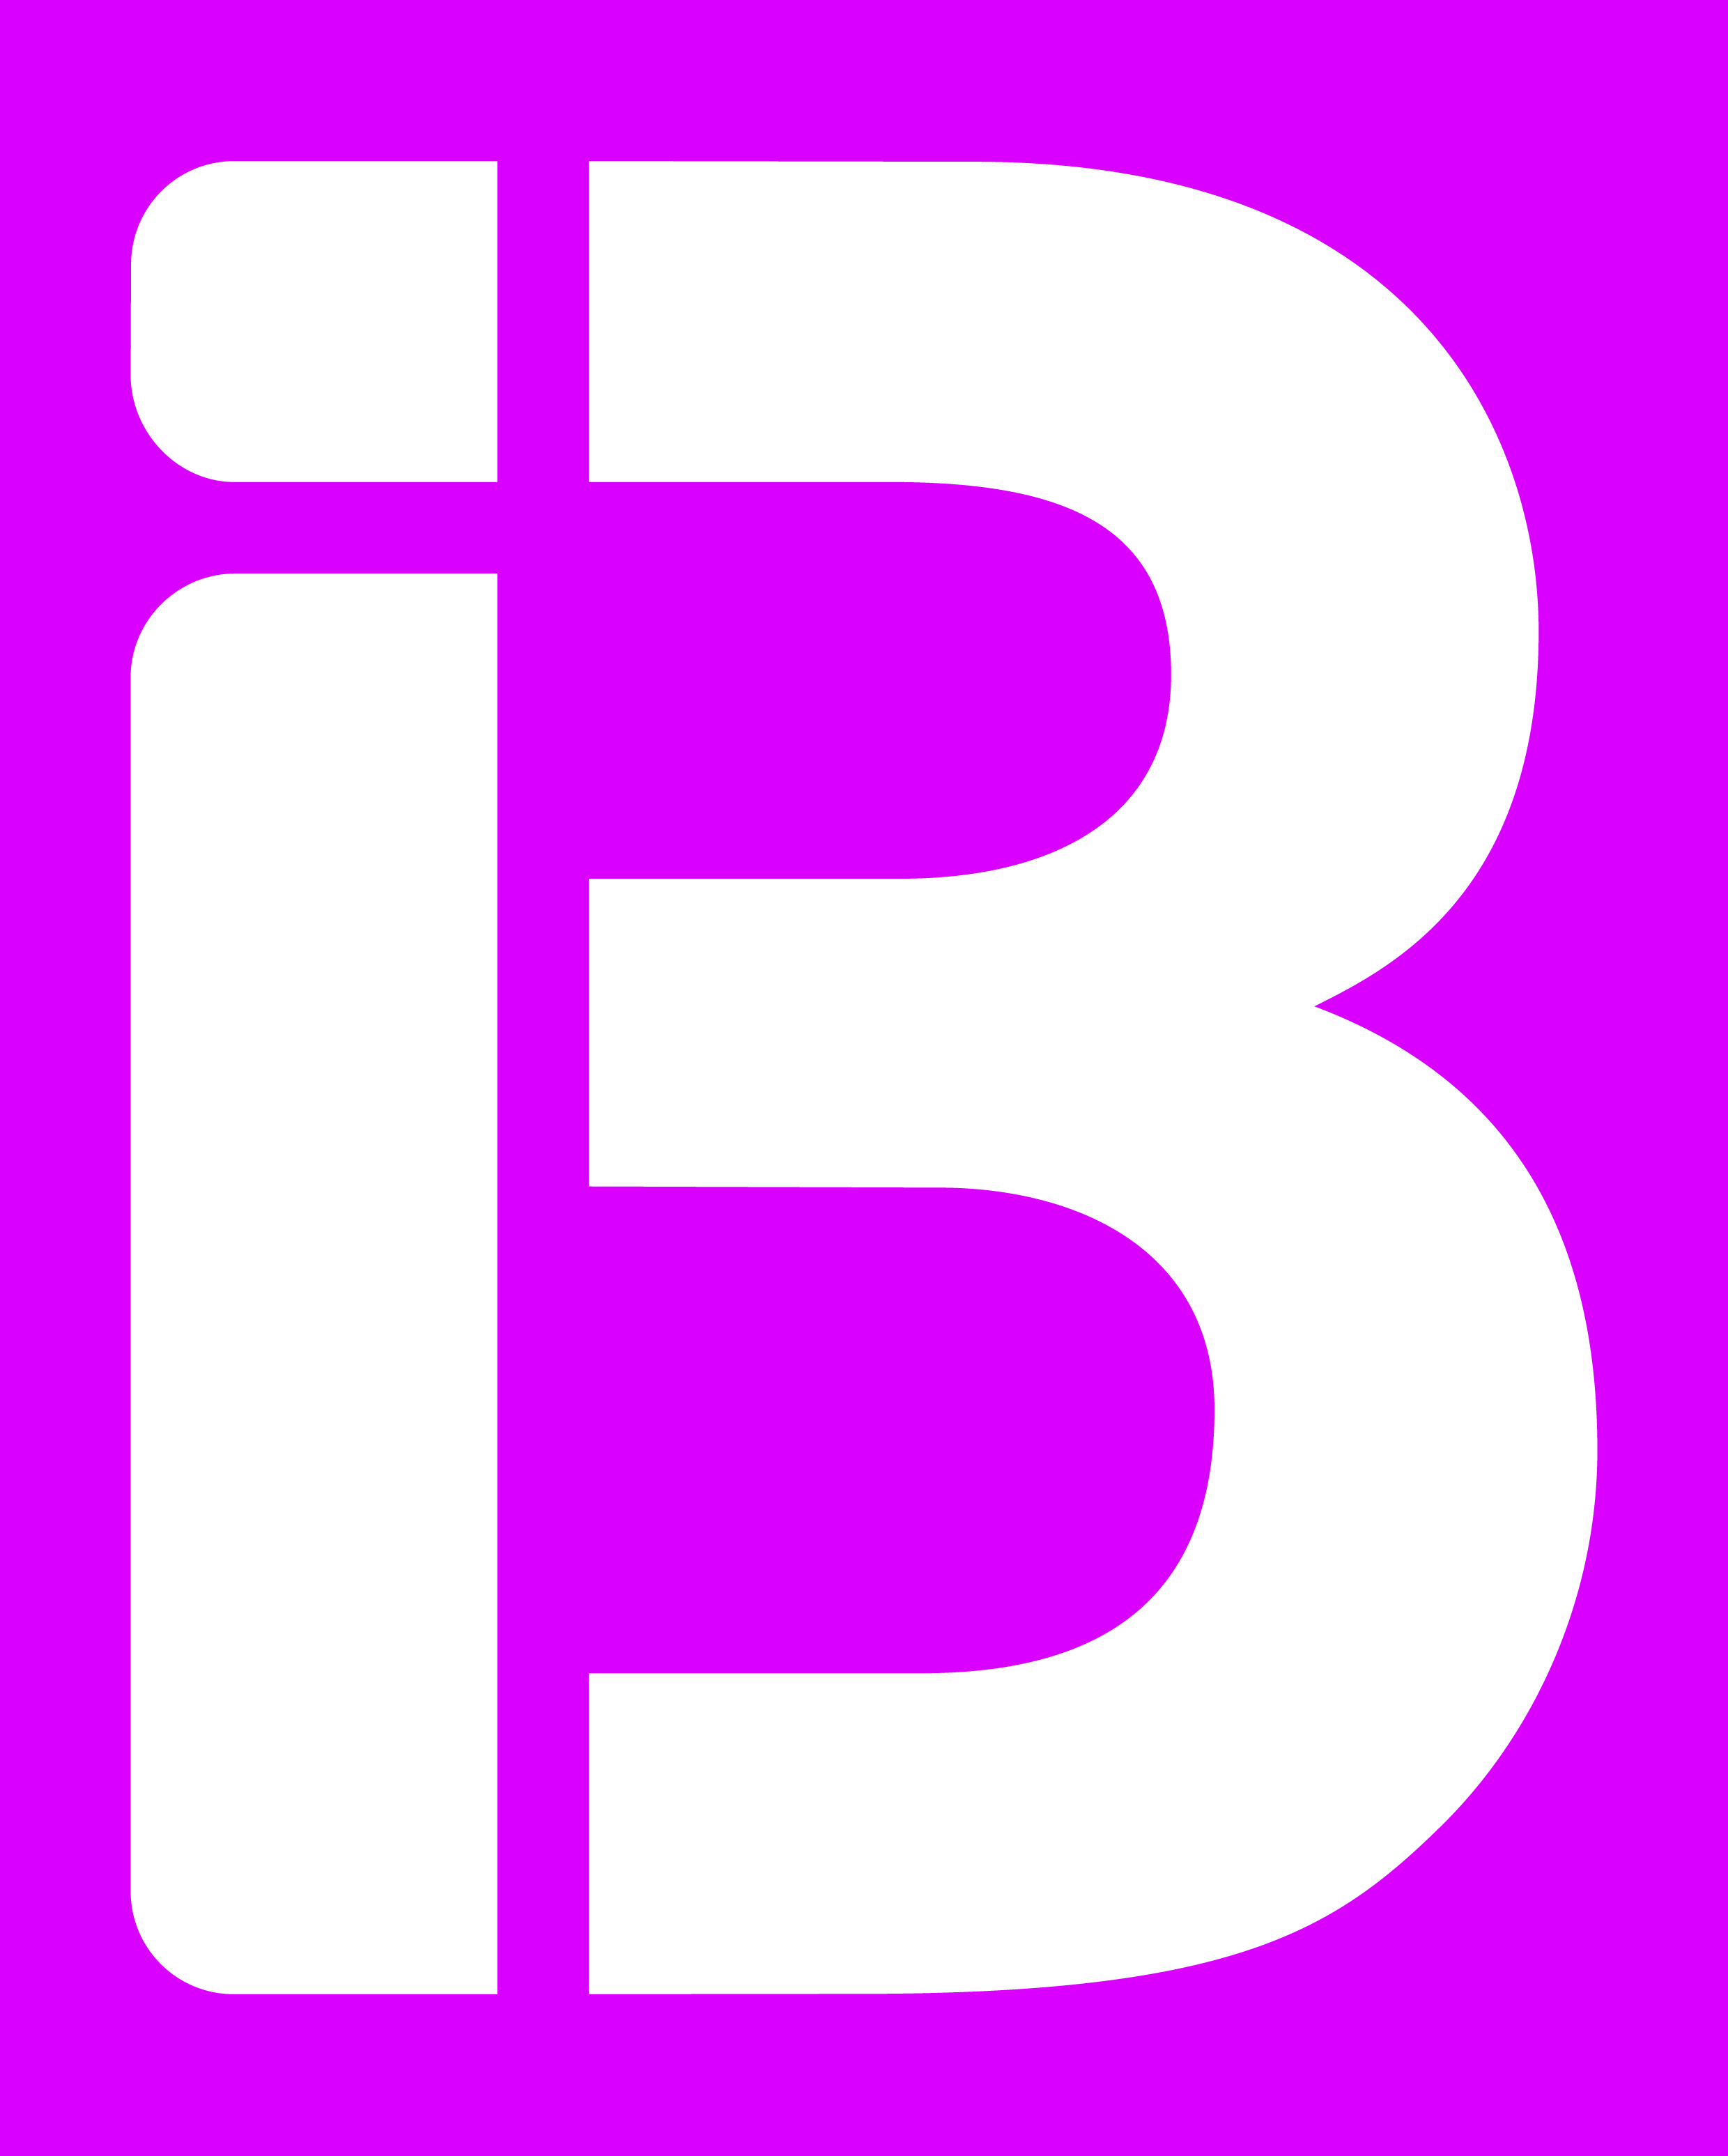 JoyRon Foundation selected by IB3 to be their nominated charity of the month of April 2017.